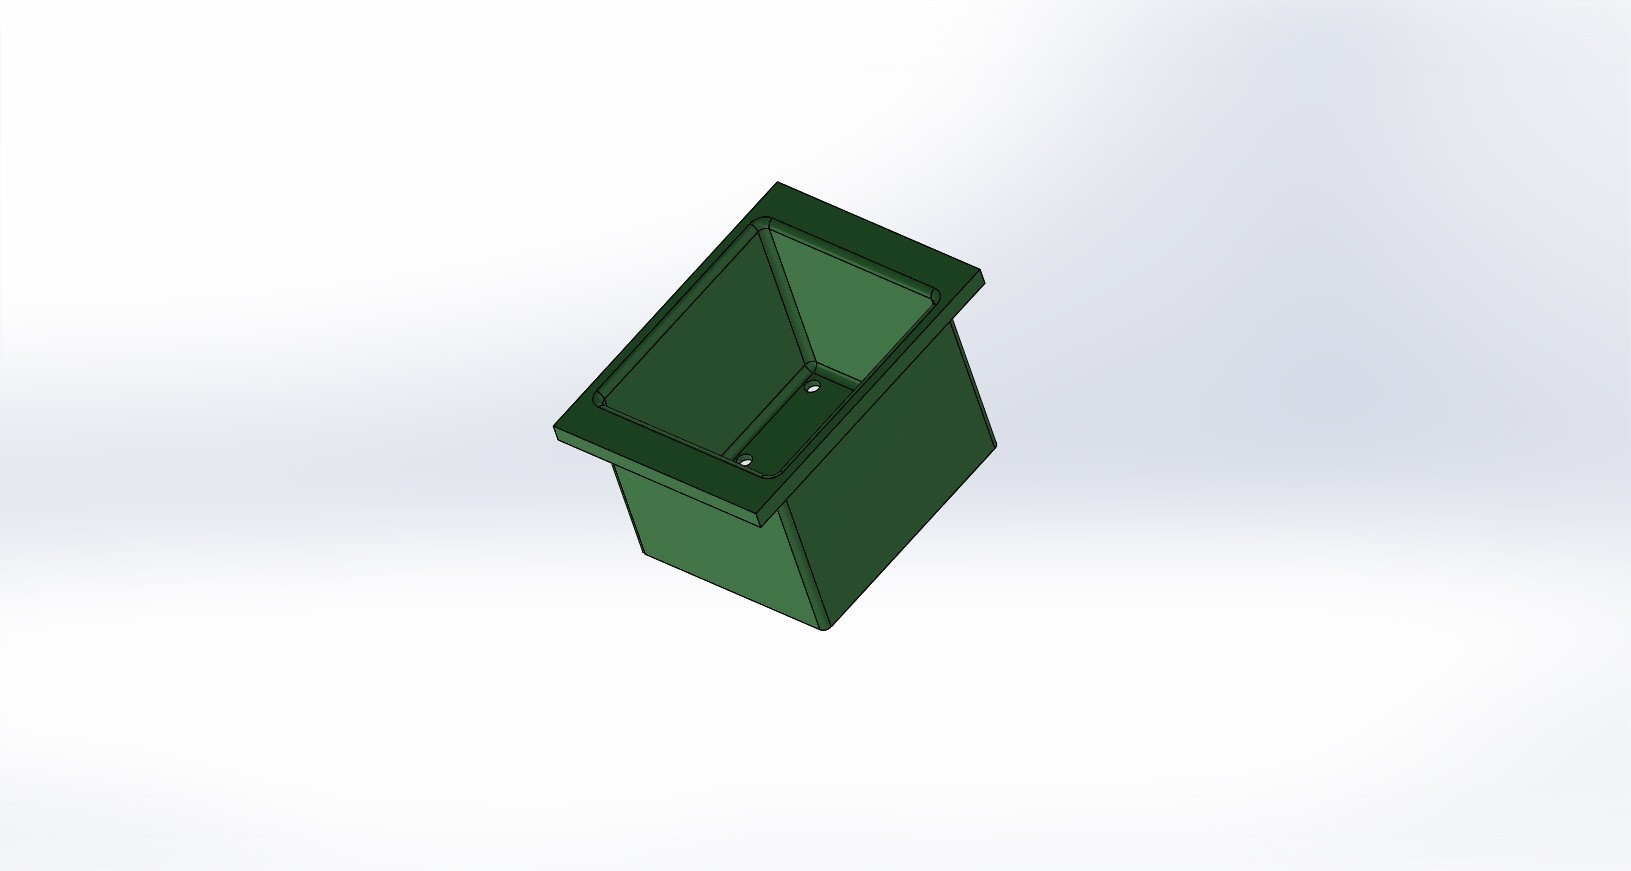 plant pot 2.JPG Download free STL file Modular Plant Holding System with Water recycling • 3D print model, AAMS